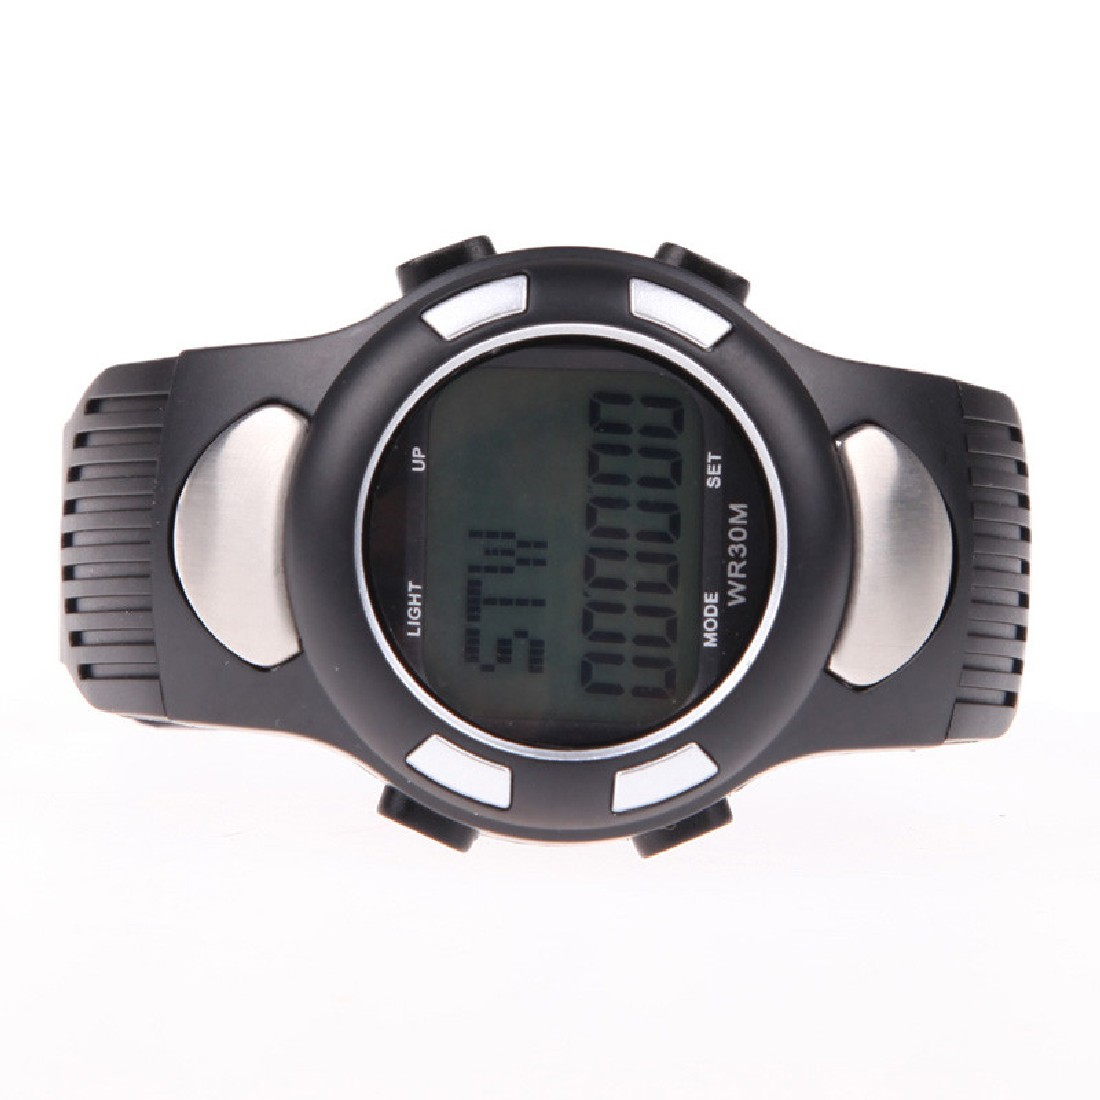 New Arrival 3D Pedometer Watch Heart Rate Monitor Wristwatch Reloj Deportivo With Backlight Silver